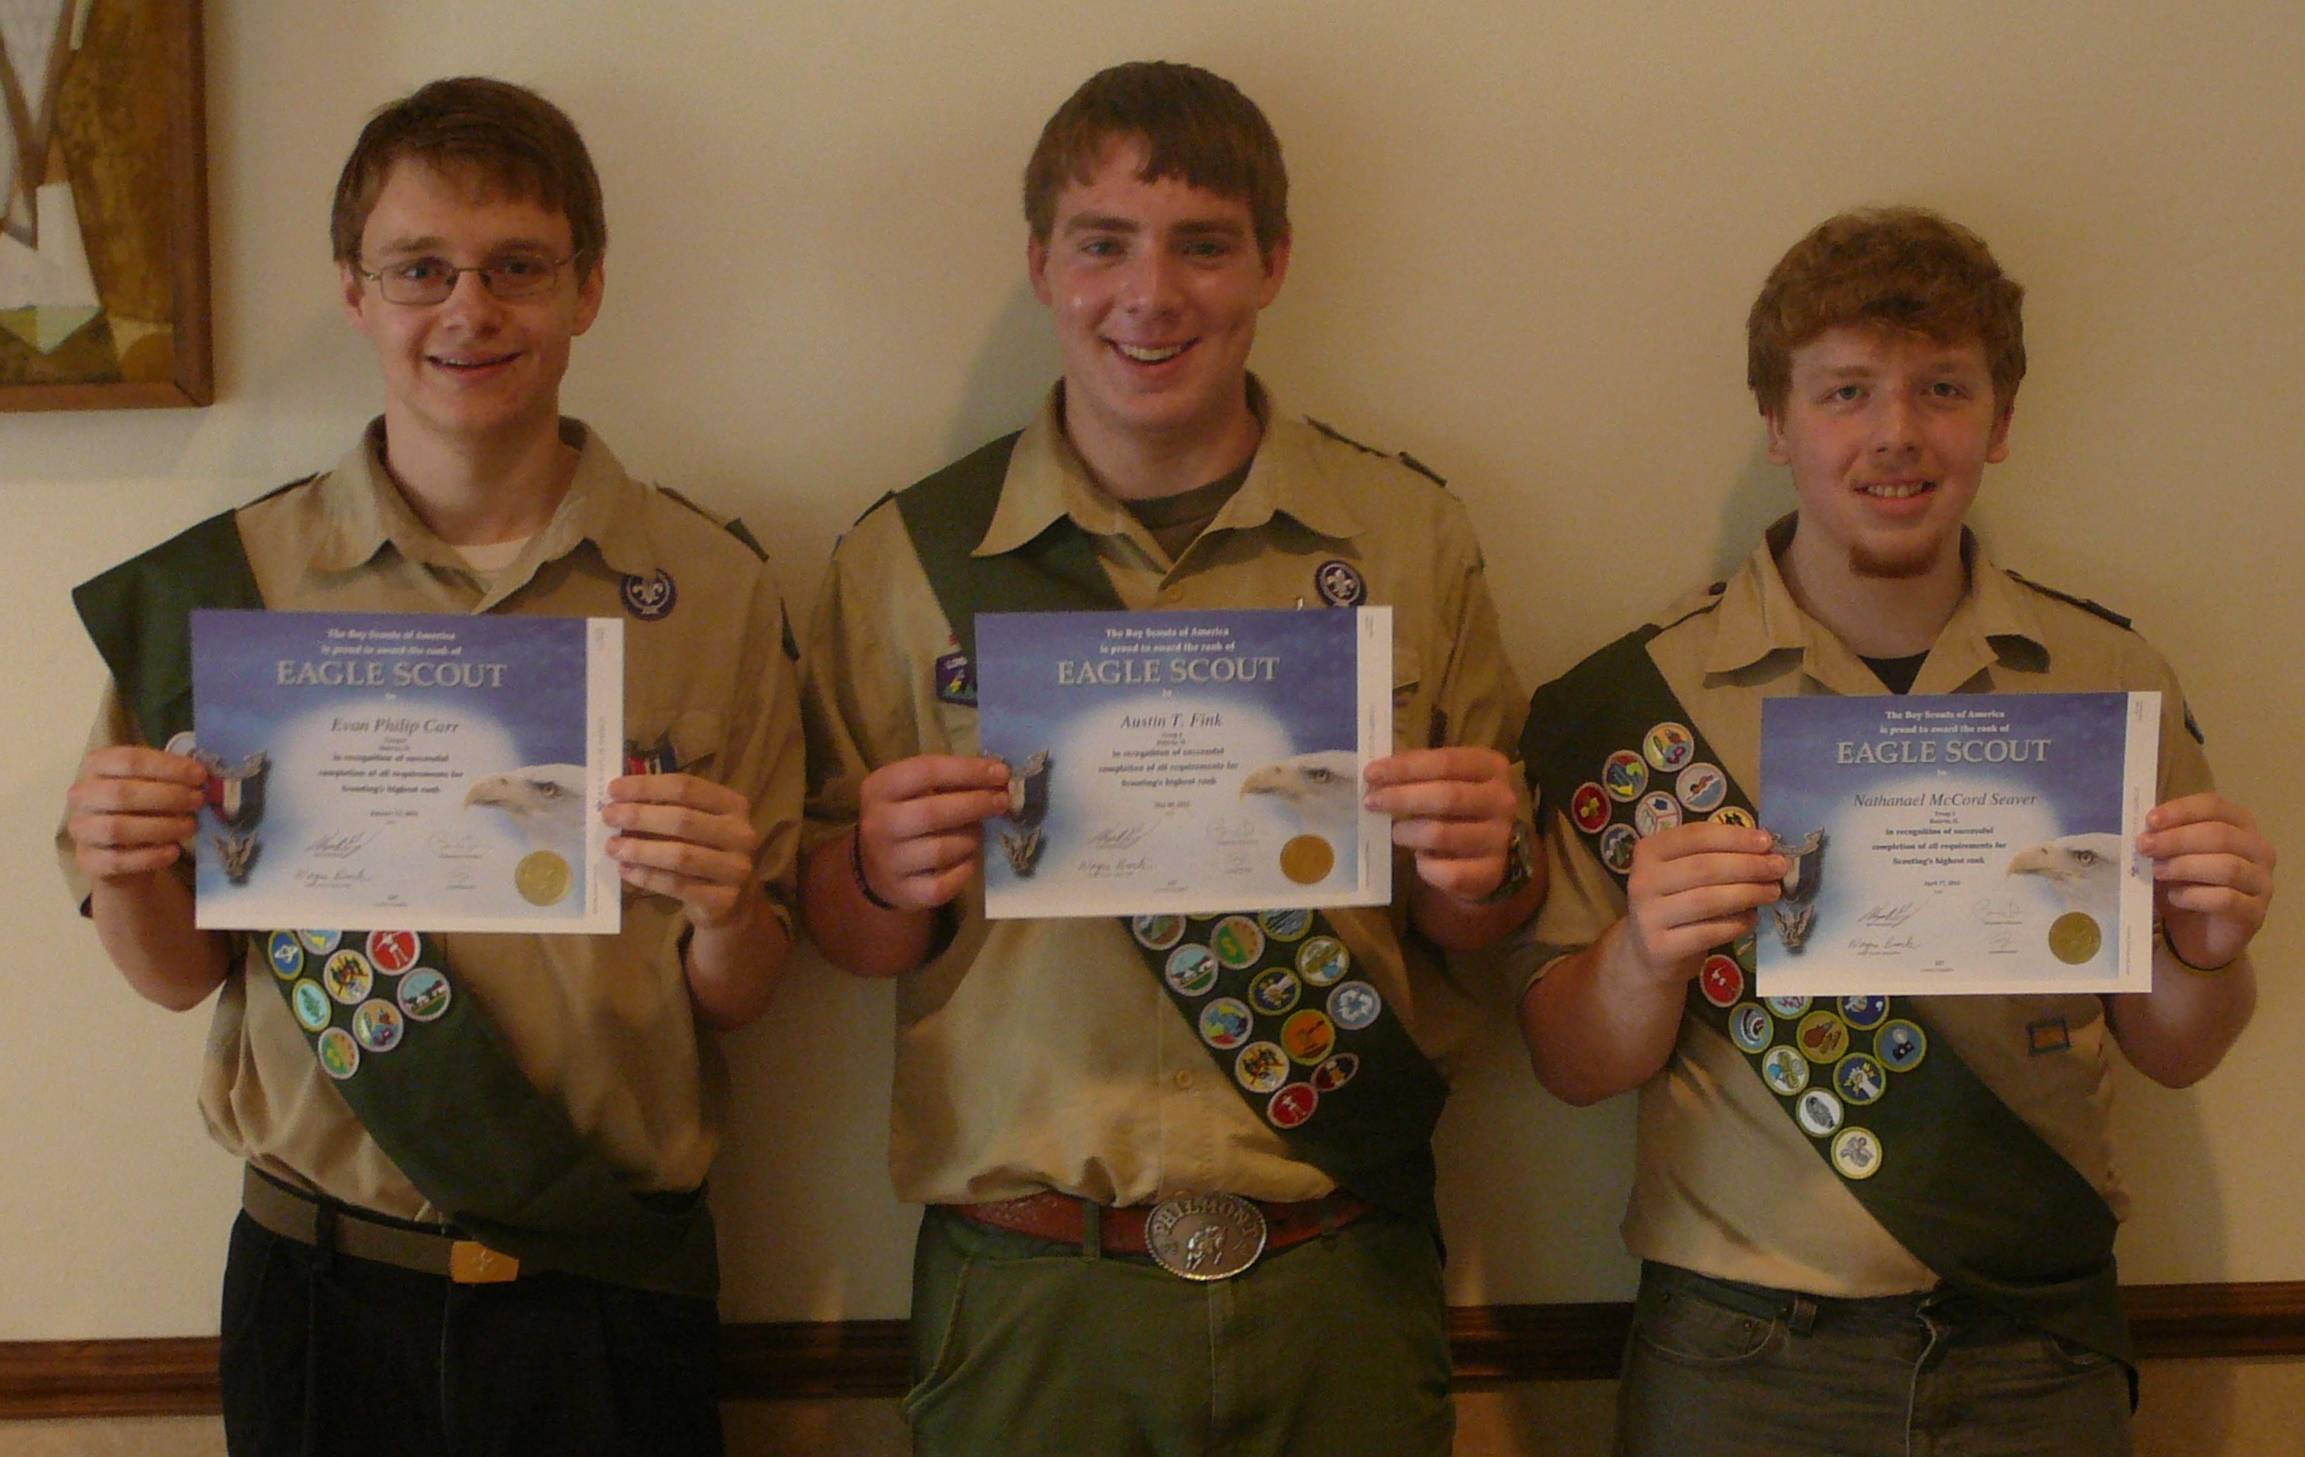 Batavia's Boy Scouts Troop 6 latest Eagle Scouts are, from left, Evan Carr, Austin Fink and Nate Seaver.